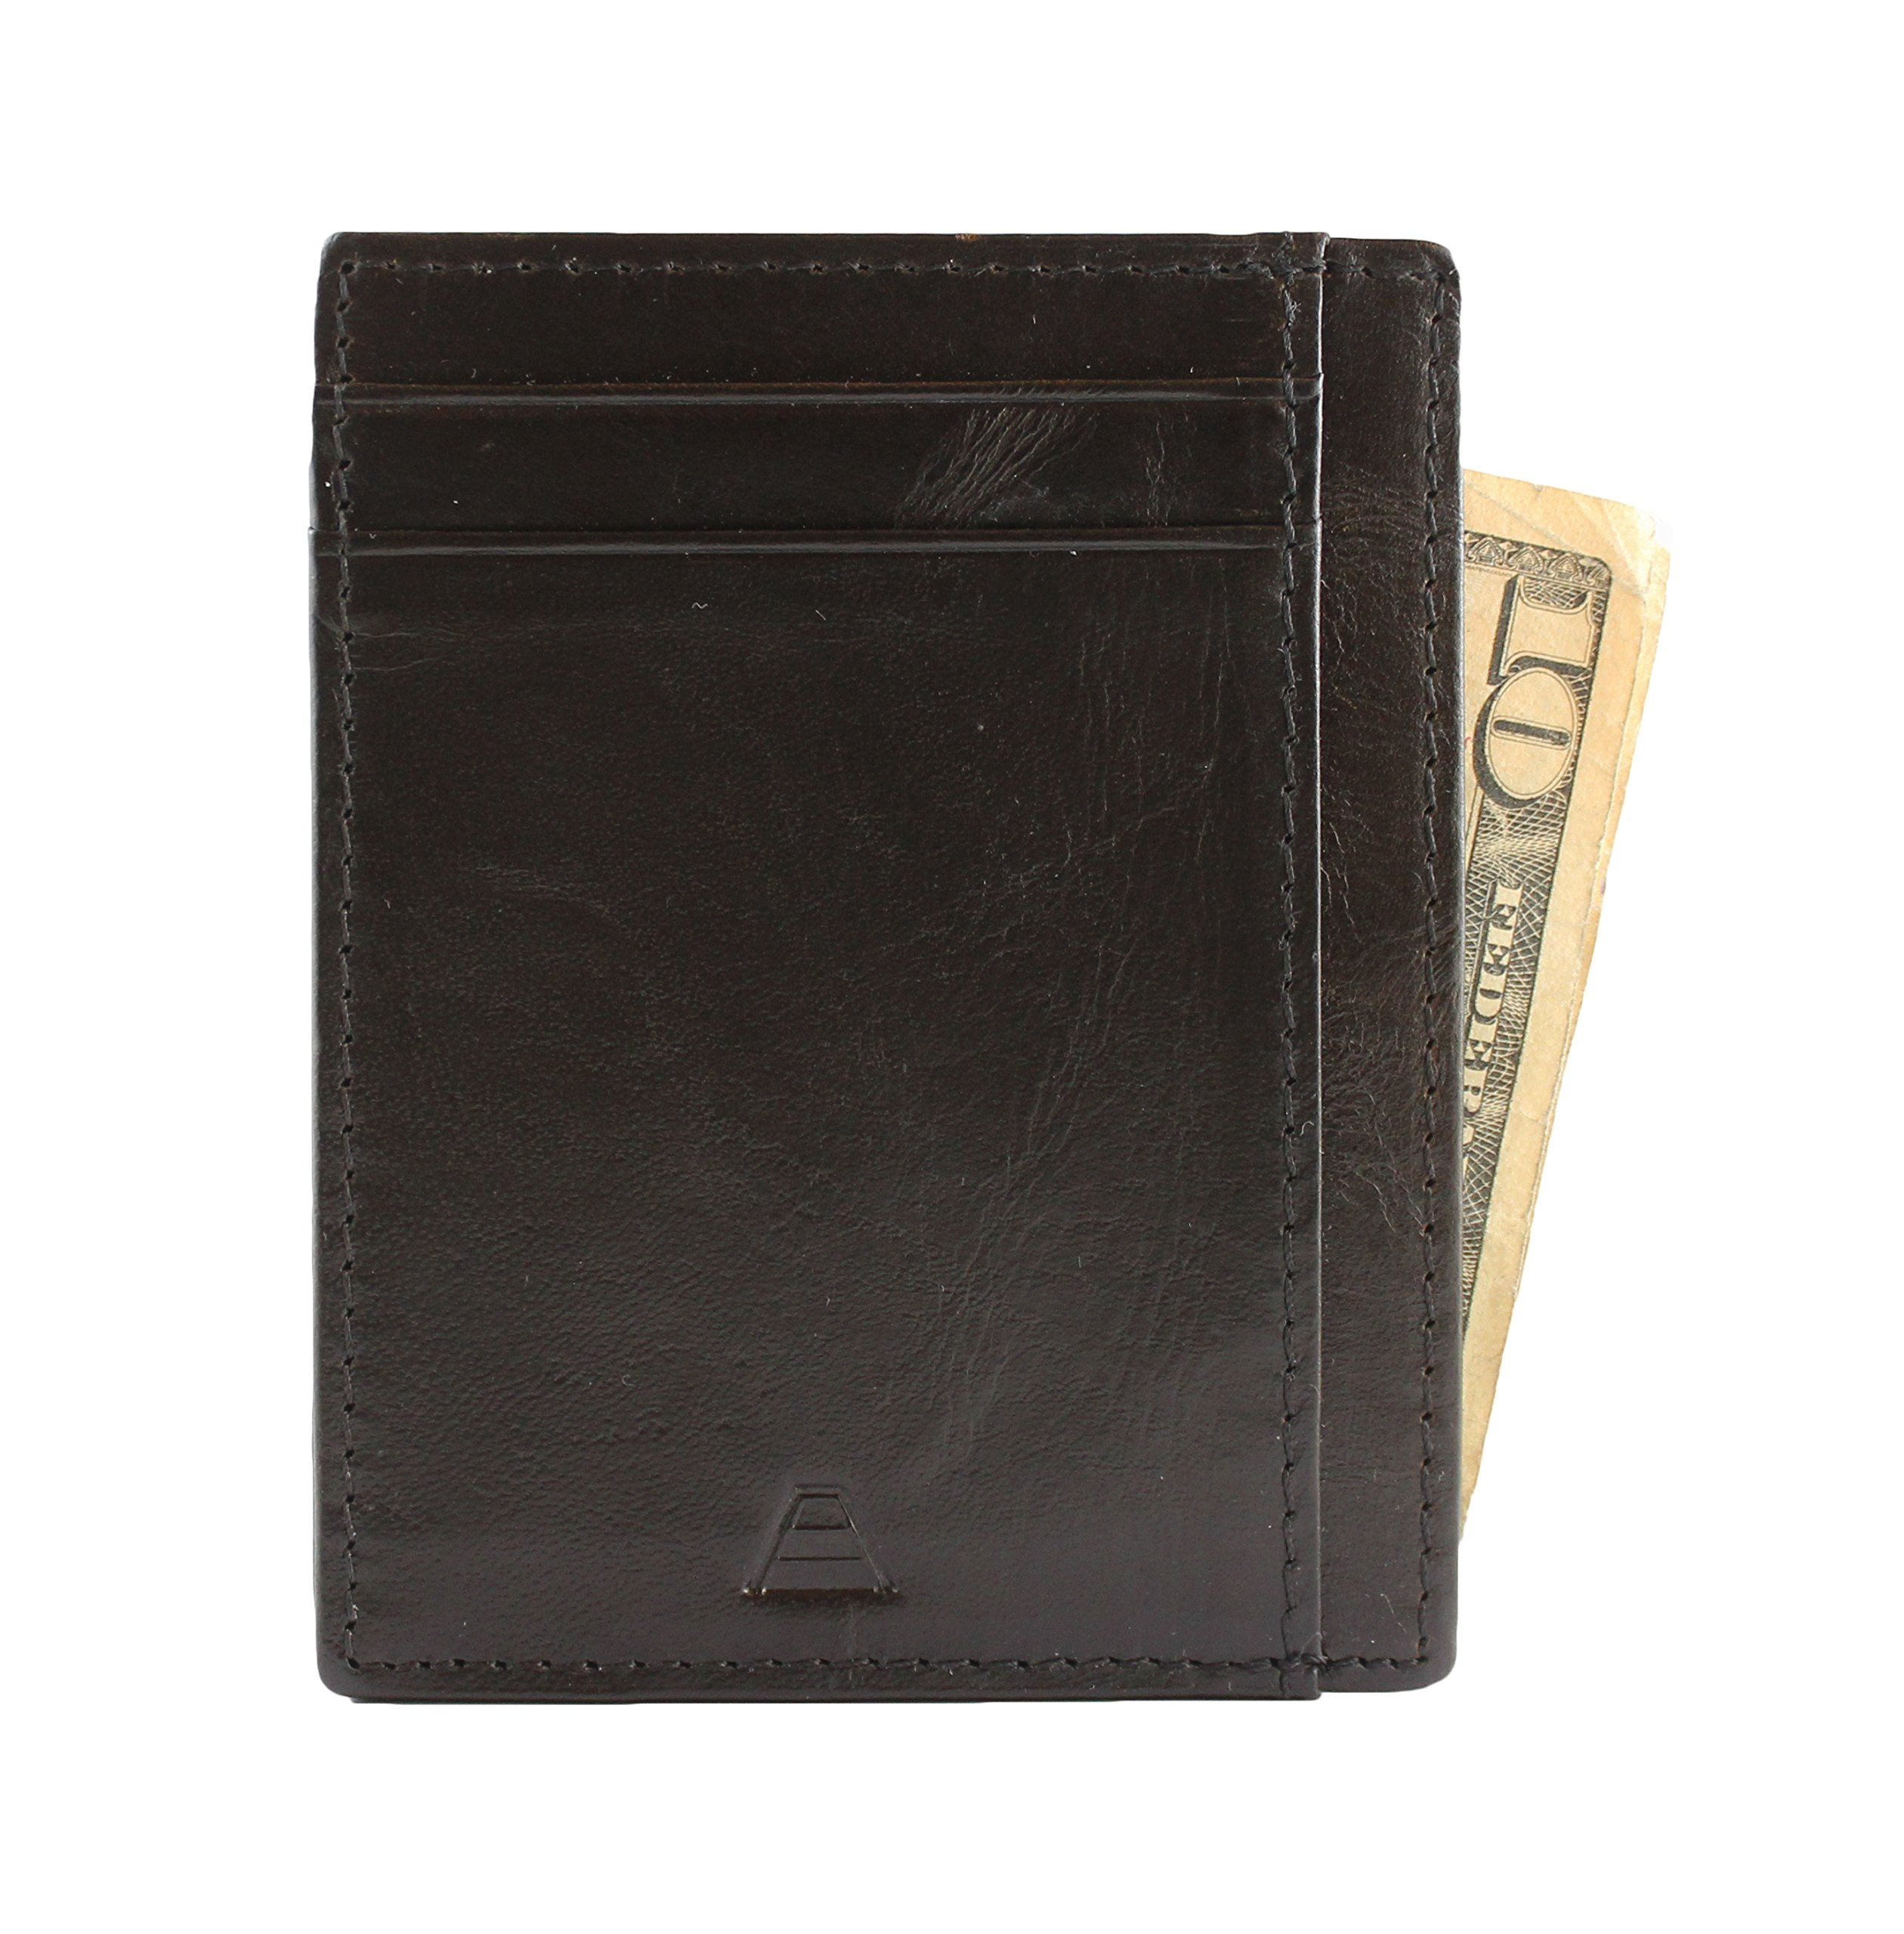 Andar RFID Minimalist Front Pocket Wallet - Made of Classy Full Grain Leather (Black) by Andar (Image #6)